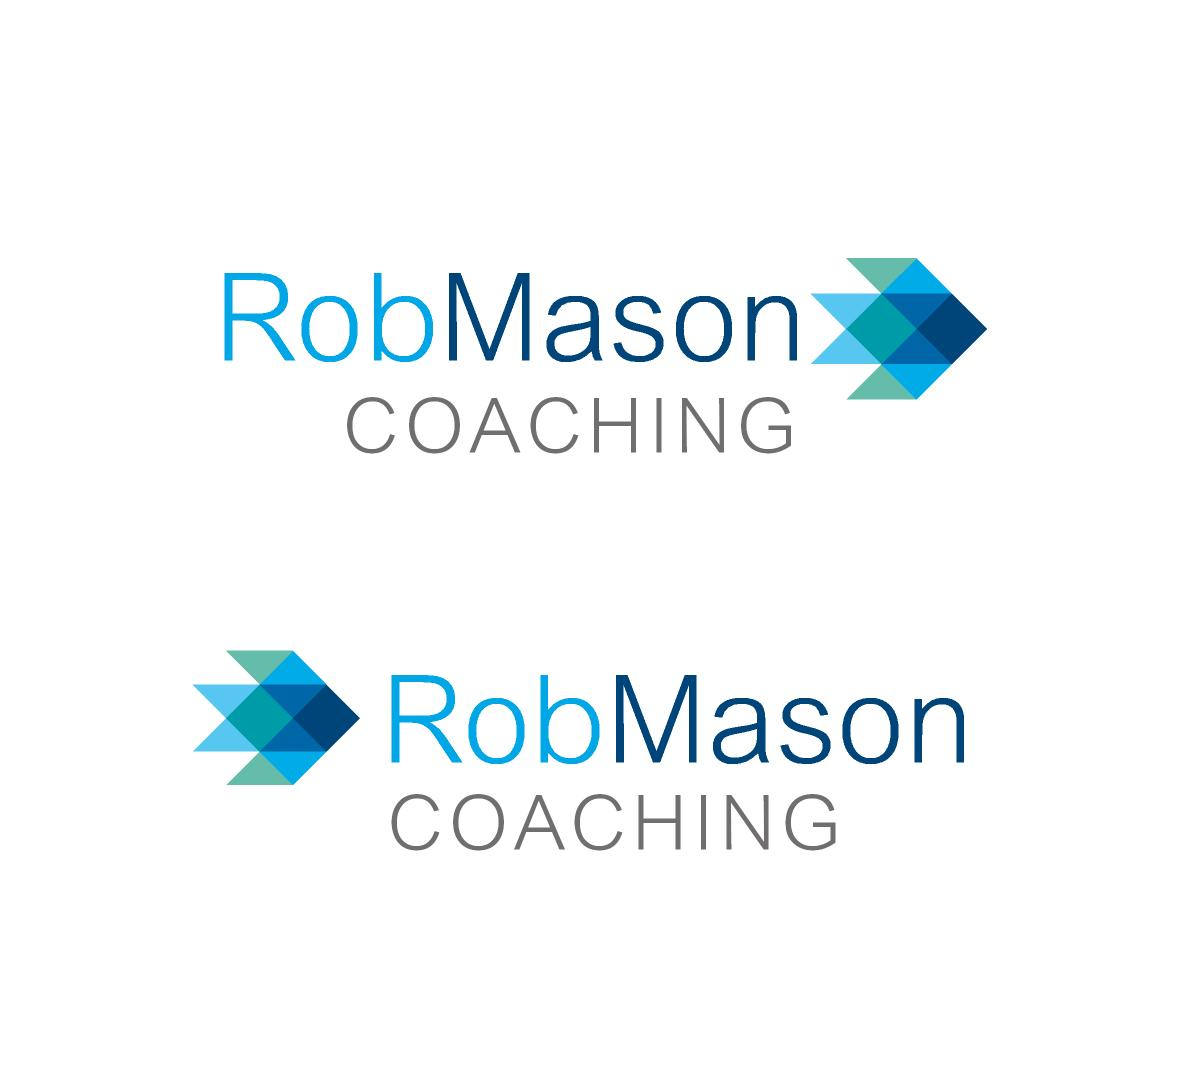 Logo Design by ZAYYADI AHMAD - Entry No. 33 in the Logo Design Contest New Logo Design Needed for Exciting Company Rob Mason Coaching.